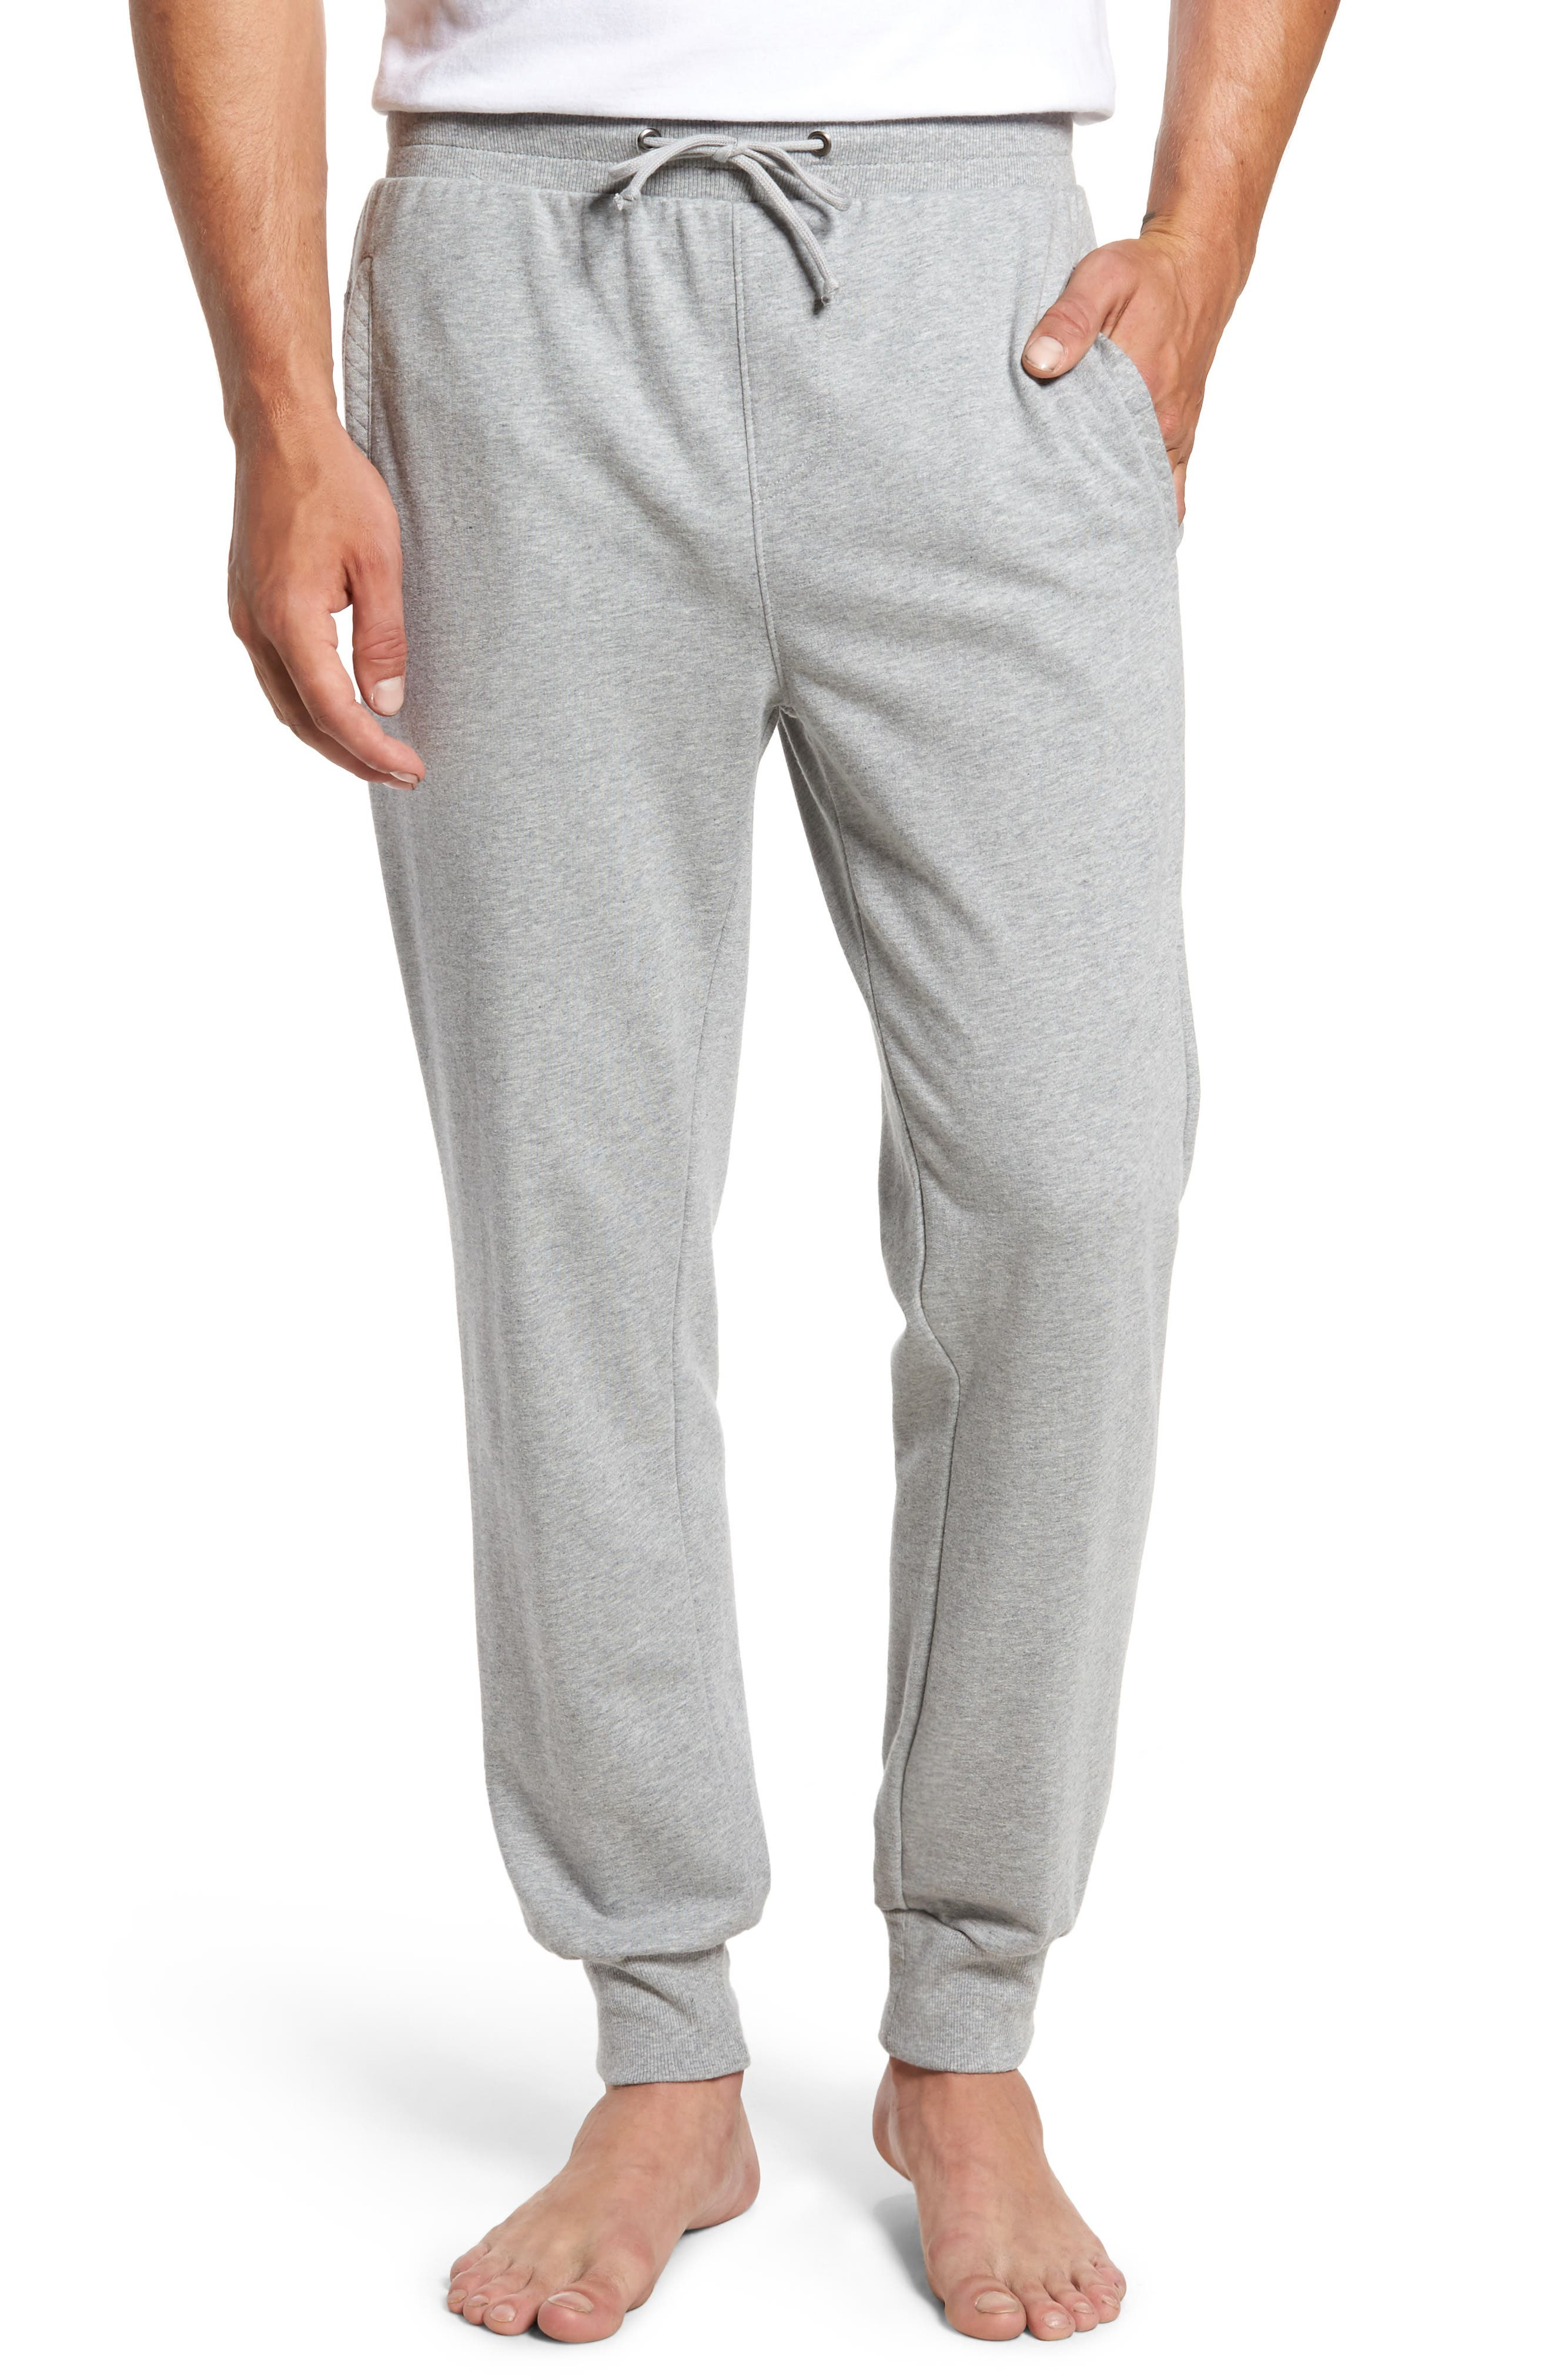 Quilted Lounge Pants,                             Main thumbnail 1, color,                             030